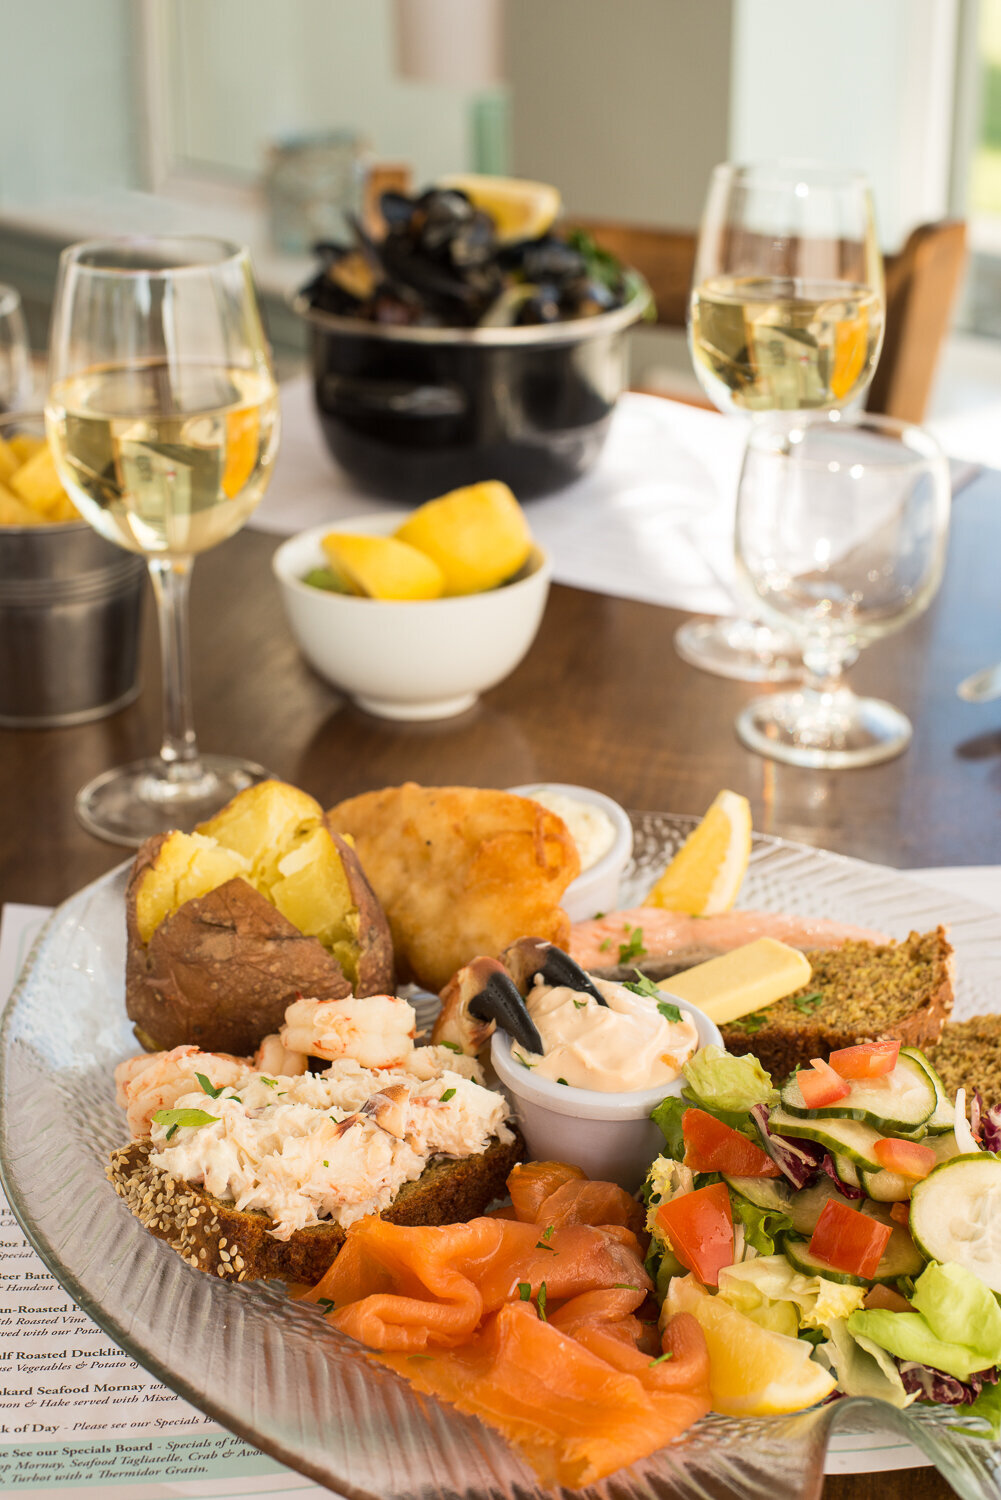 Colourful seafood platter for two with crab claws and salmon